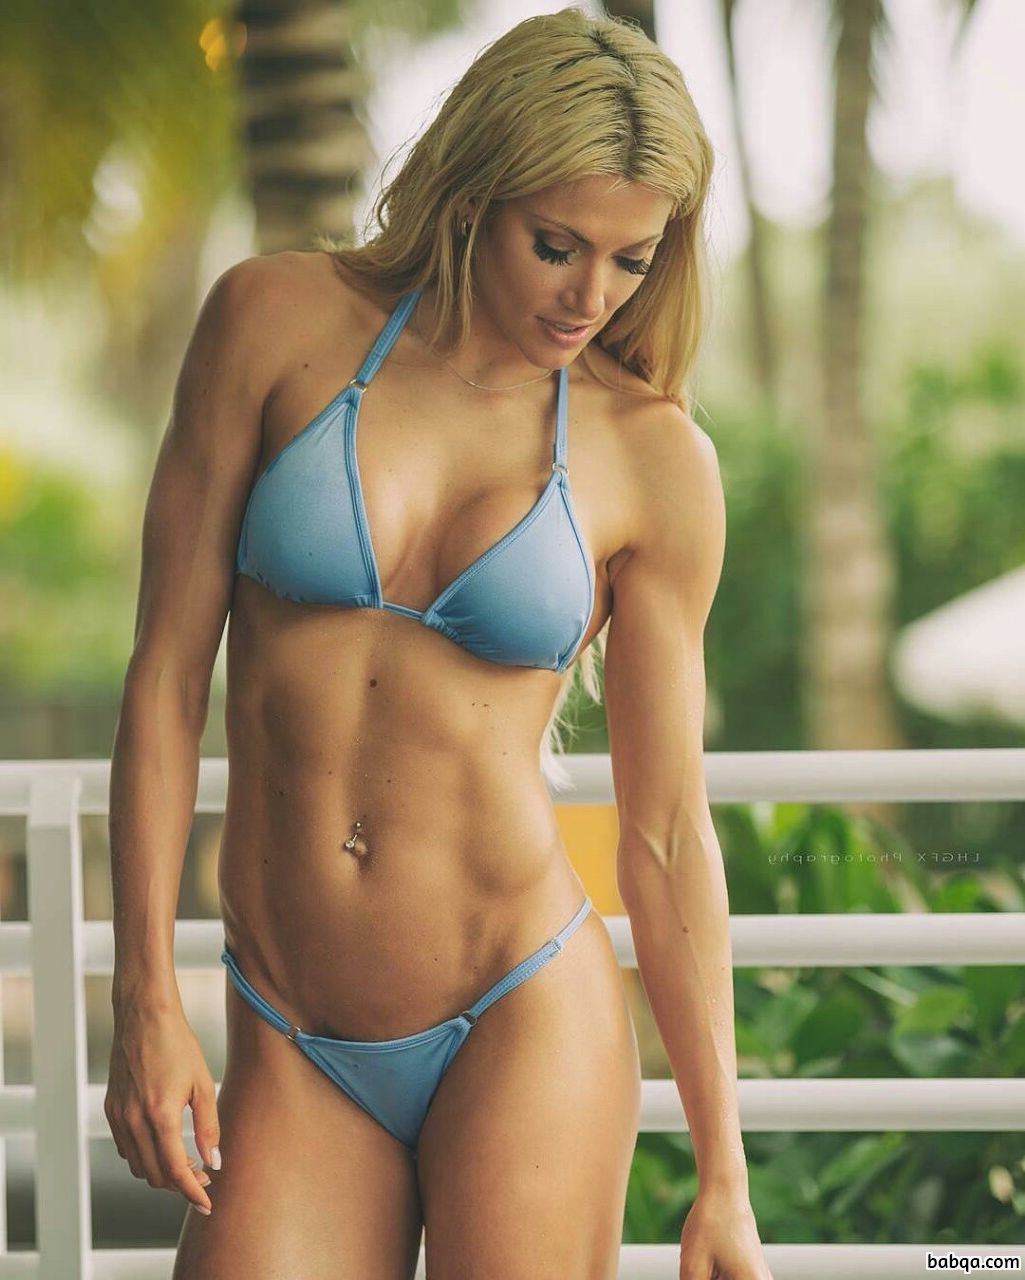 hot florida girls repost from fitbodmanic – sexy mmo girl